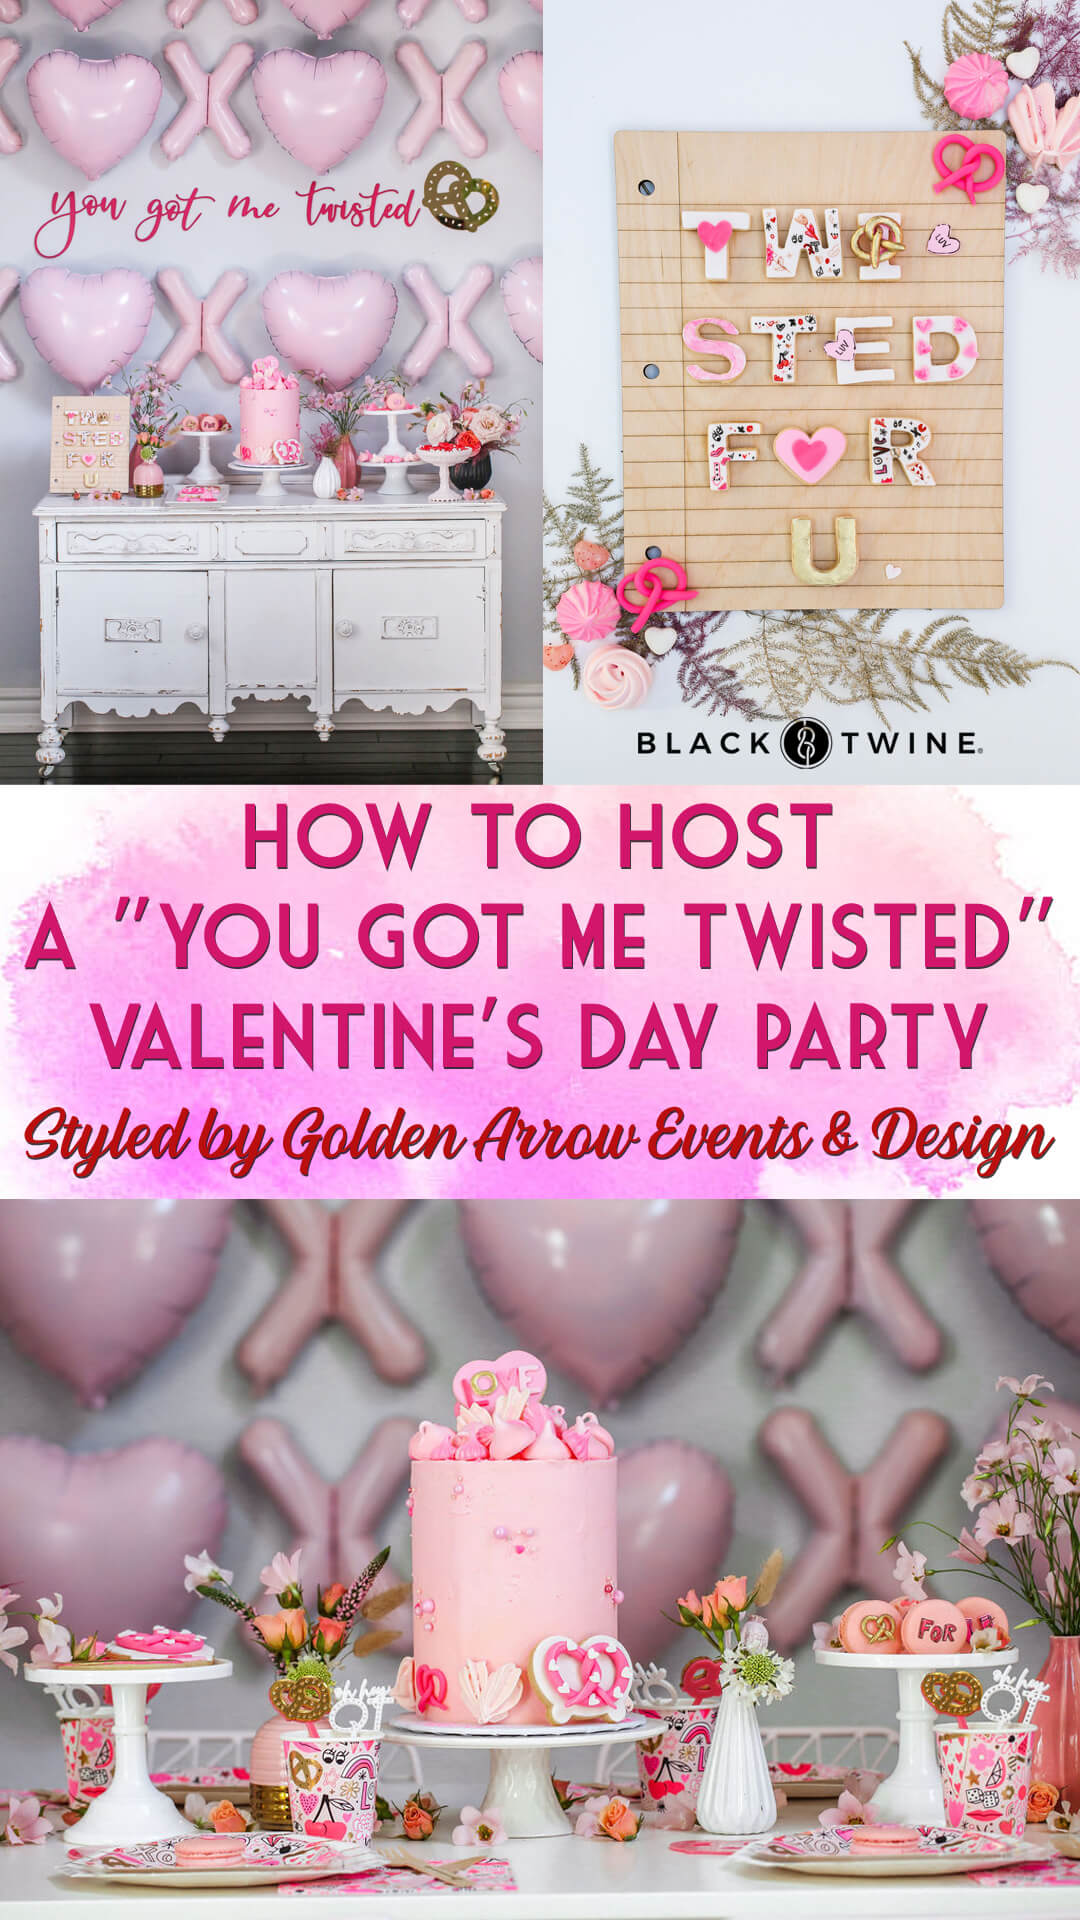 """Tablescape and """"Twisted For U"""" Cookies from """"You Got Me Twisted"""" Valentine's Day Party Styled by Golden Arrow Events & Design   Black Twine"""